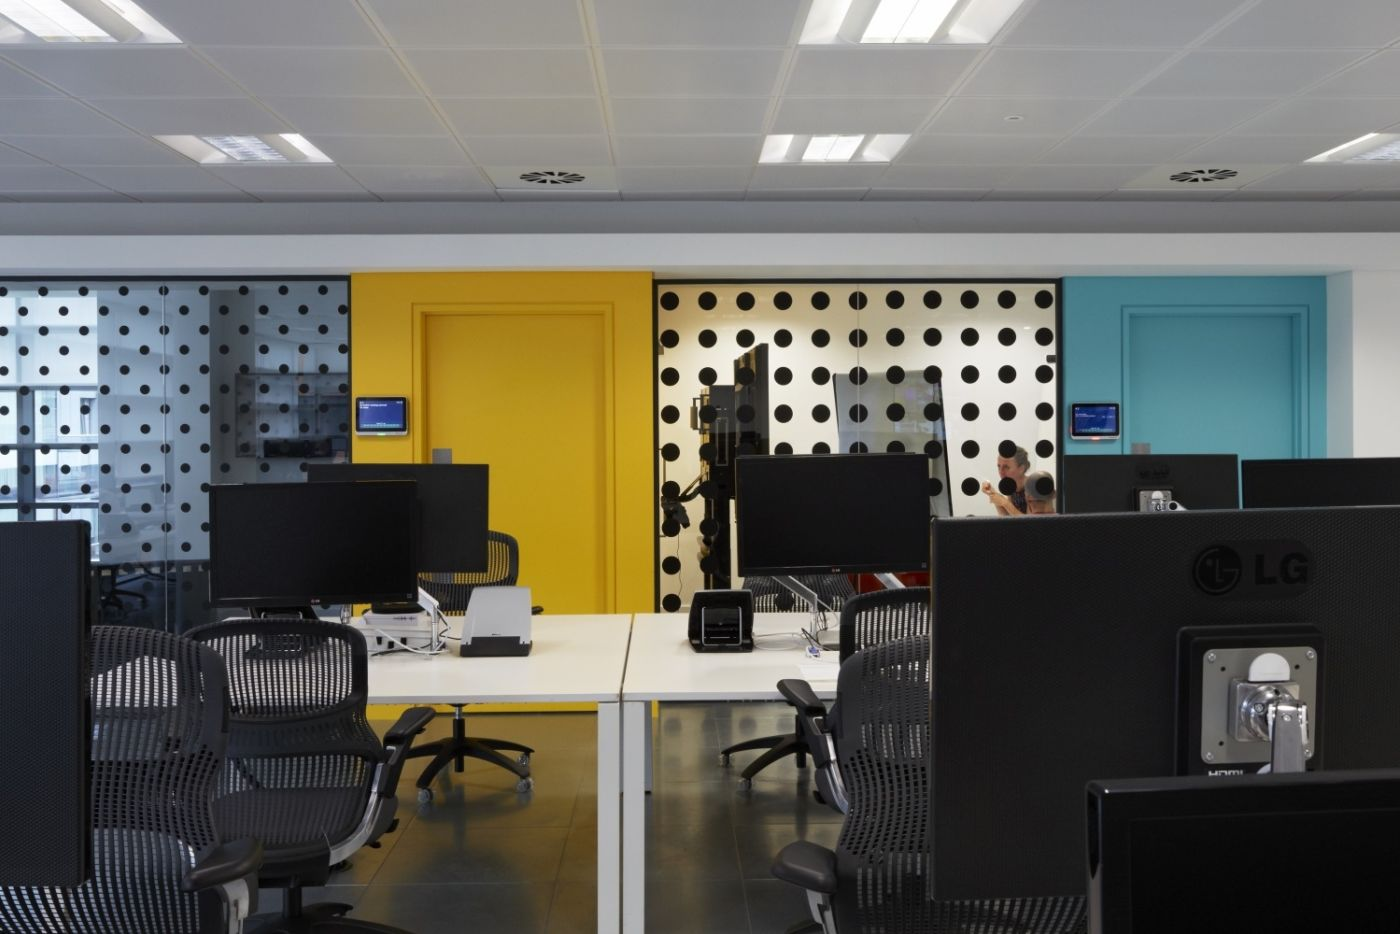 Modern workstations and yellow wall in modern office